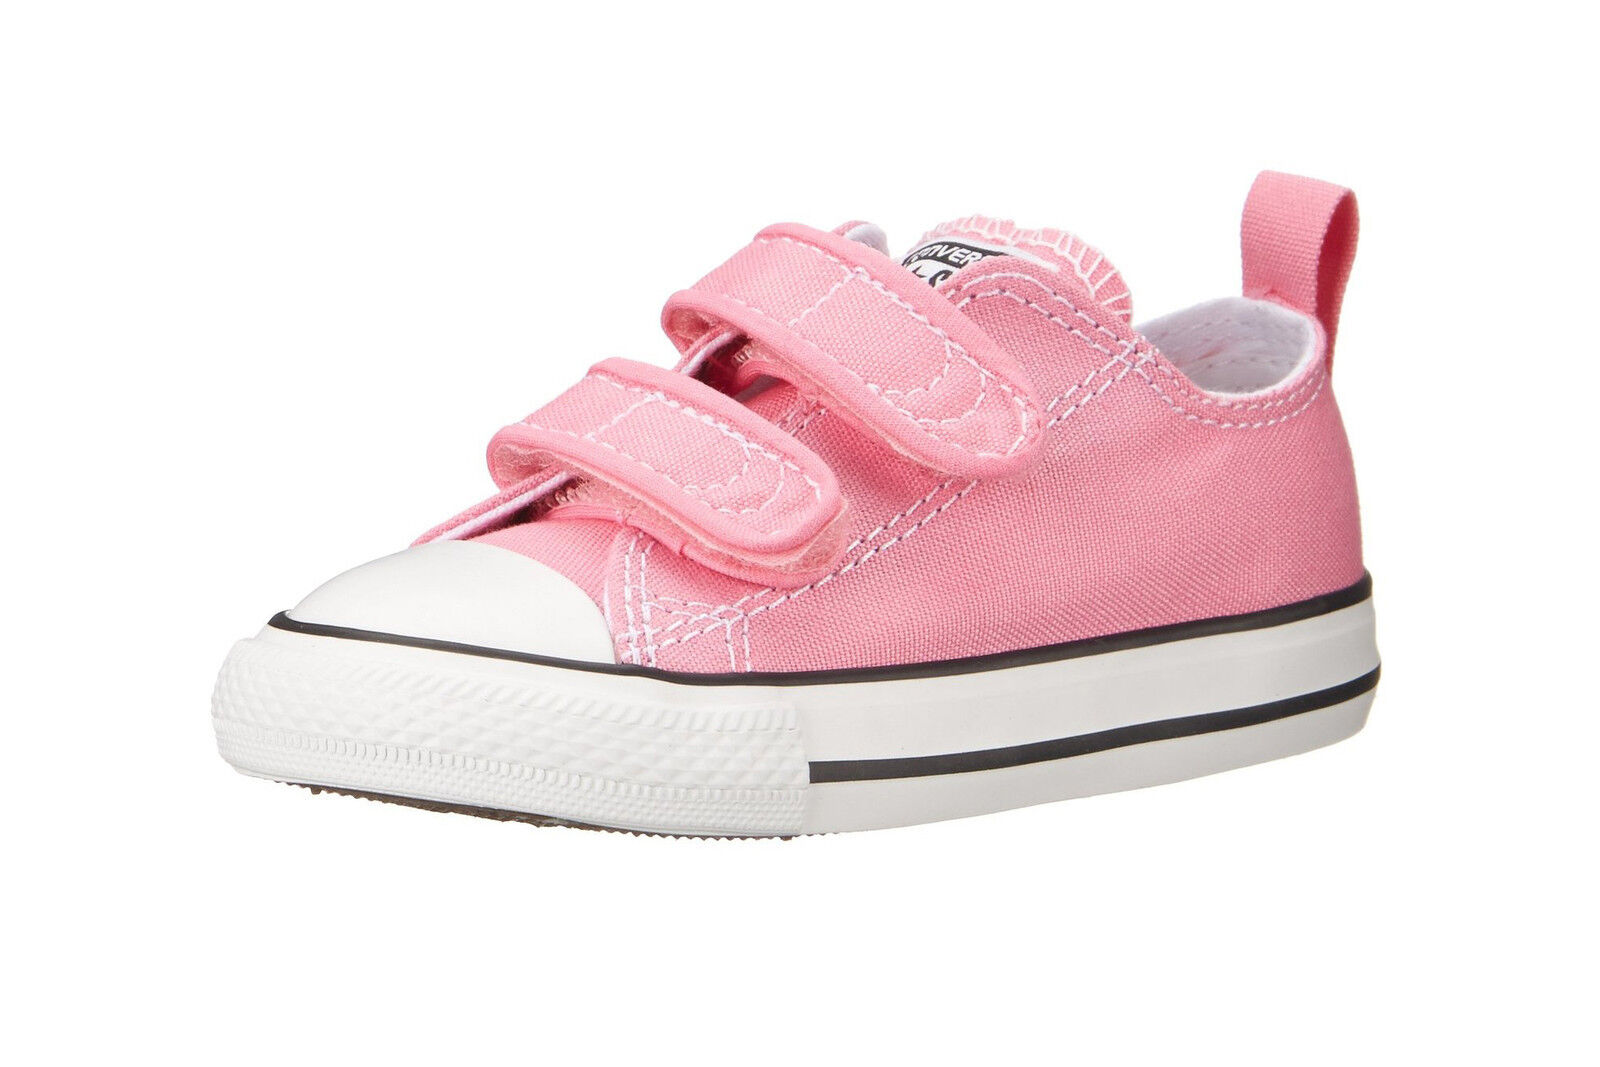 Infant Sneakers Baby Shoes Converse Chuck Taylor 2v Ox Infant Sneakers 3 Pink